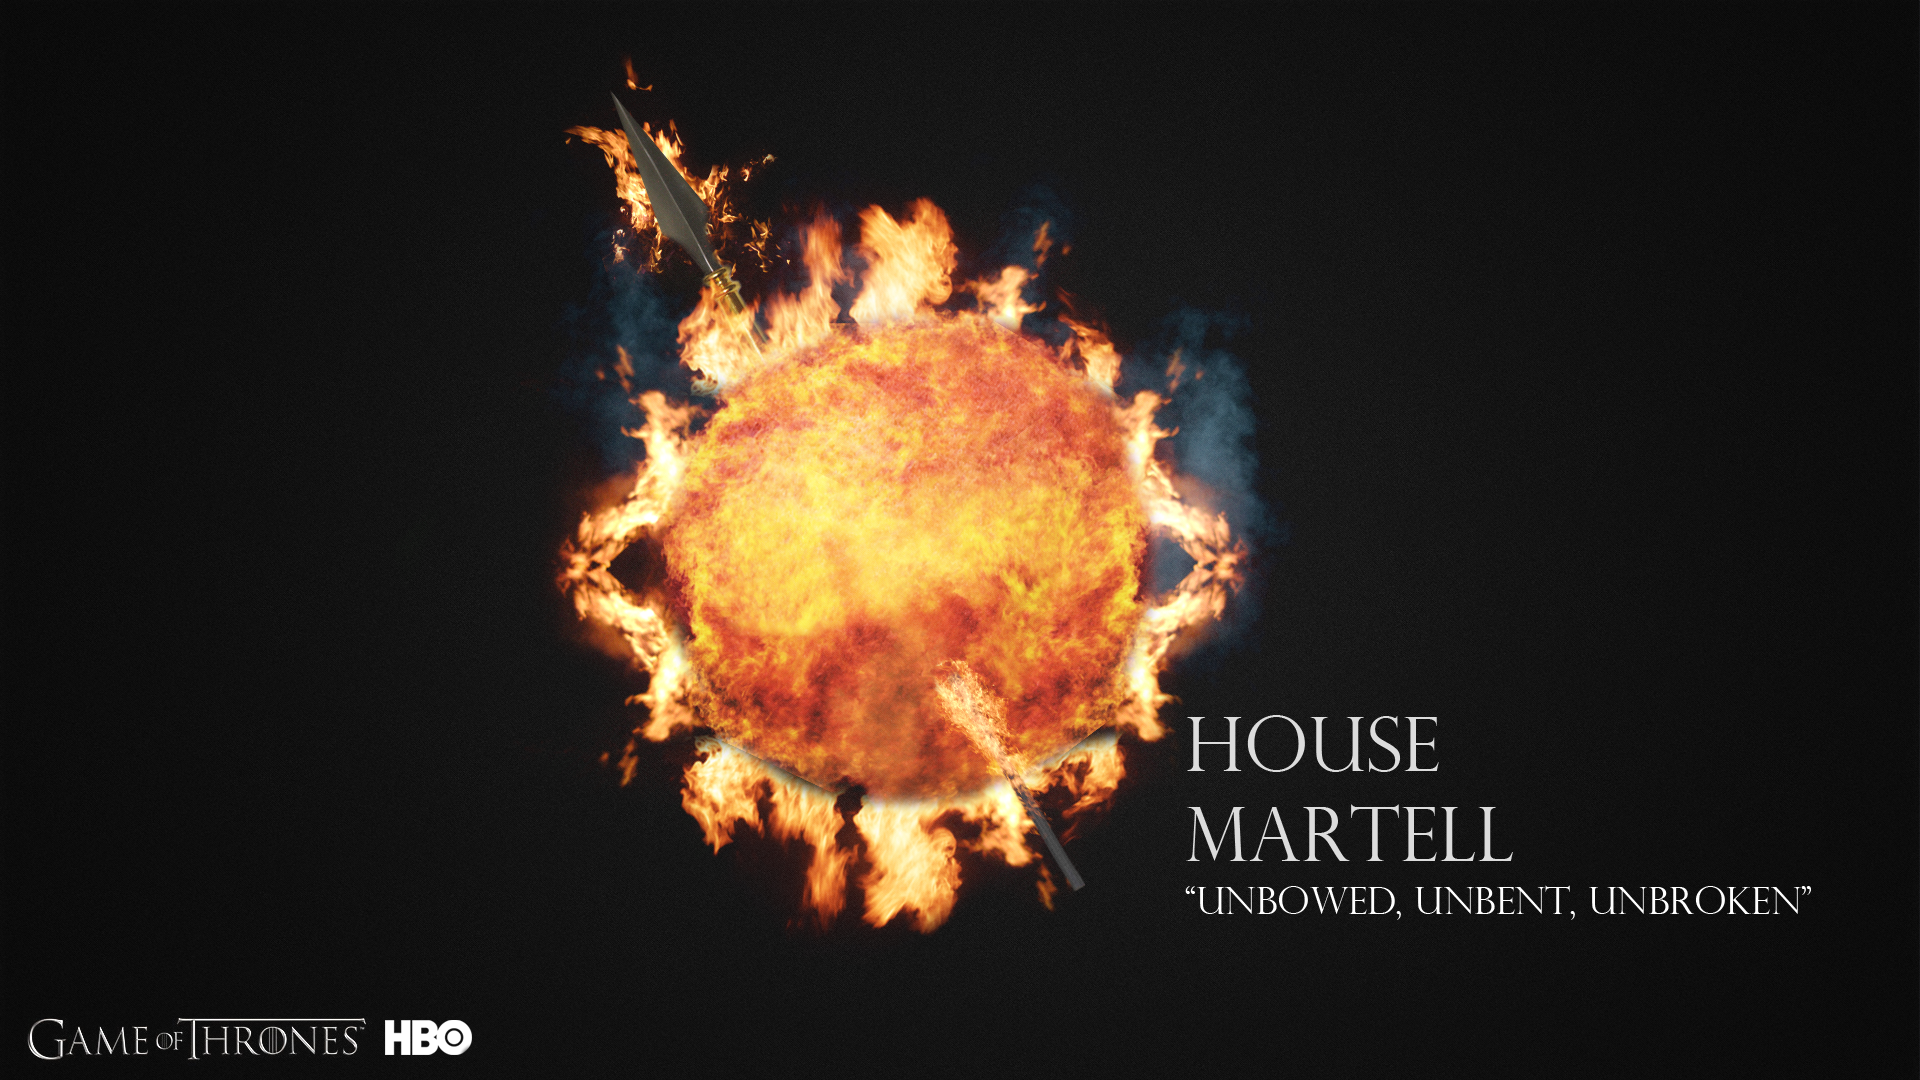 House Martell Game Of Thrones Wallpaper 38239375 Fanpop